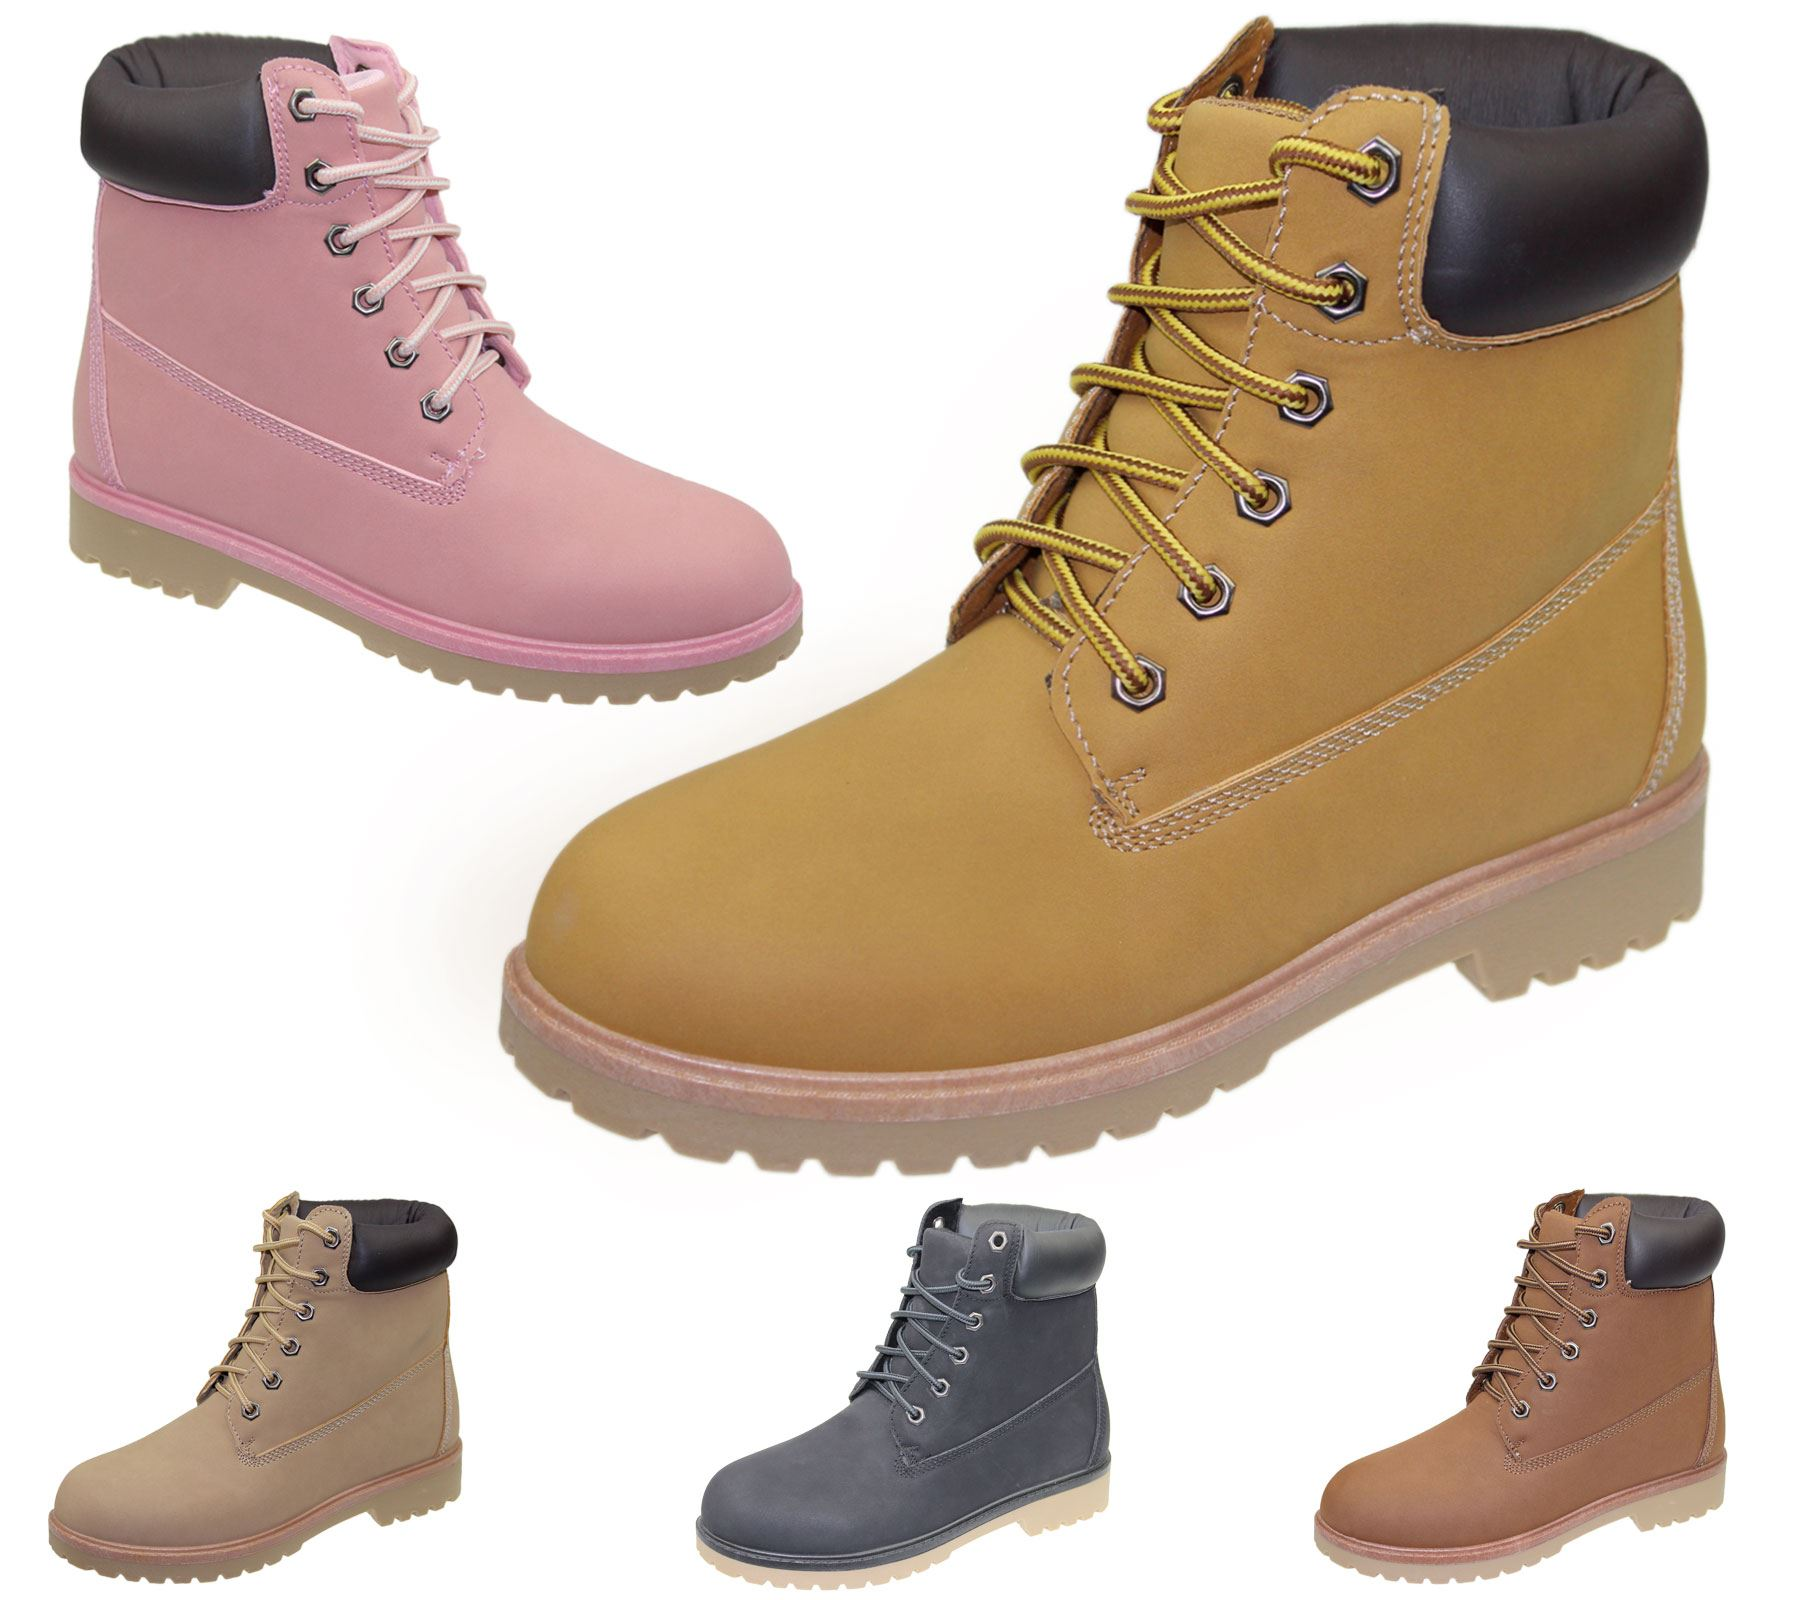 b62fb55a9a1 Details about Womens High Top Boots Hiking Desert Combat Ladies Ankle Work  Biker Shoes Size